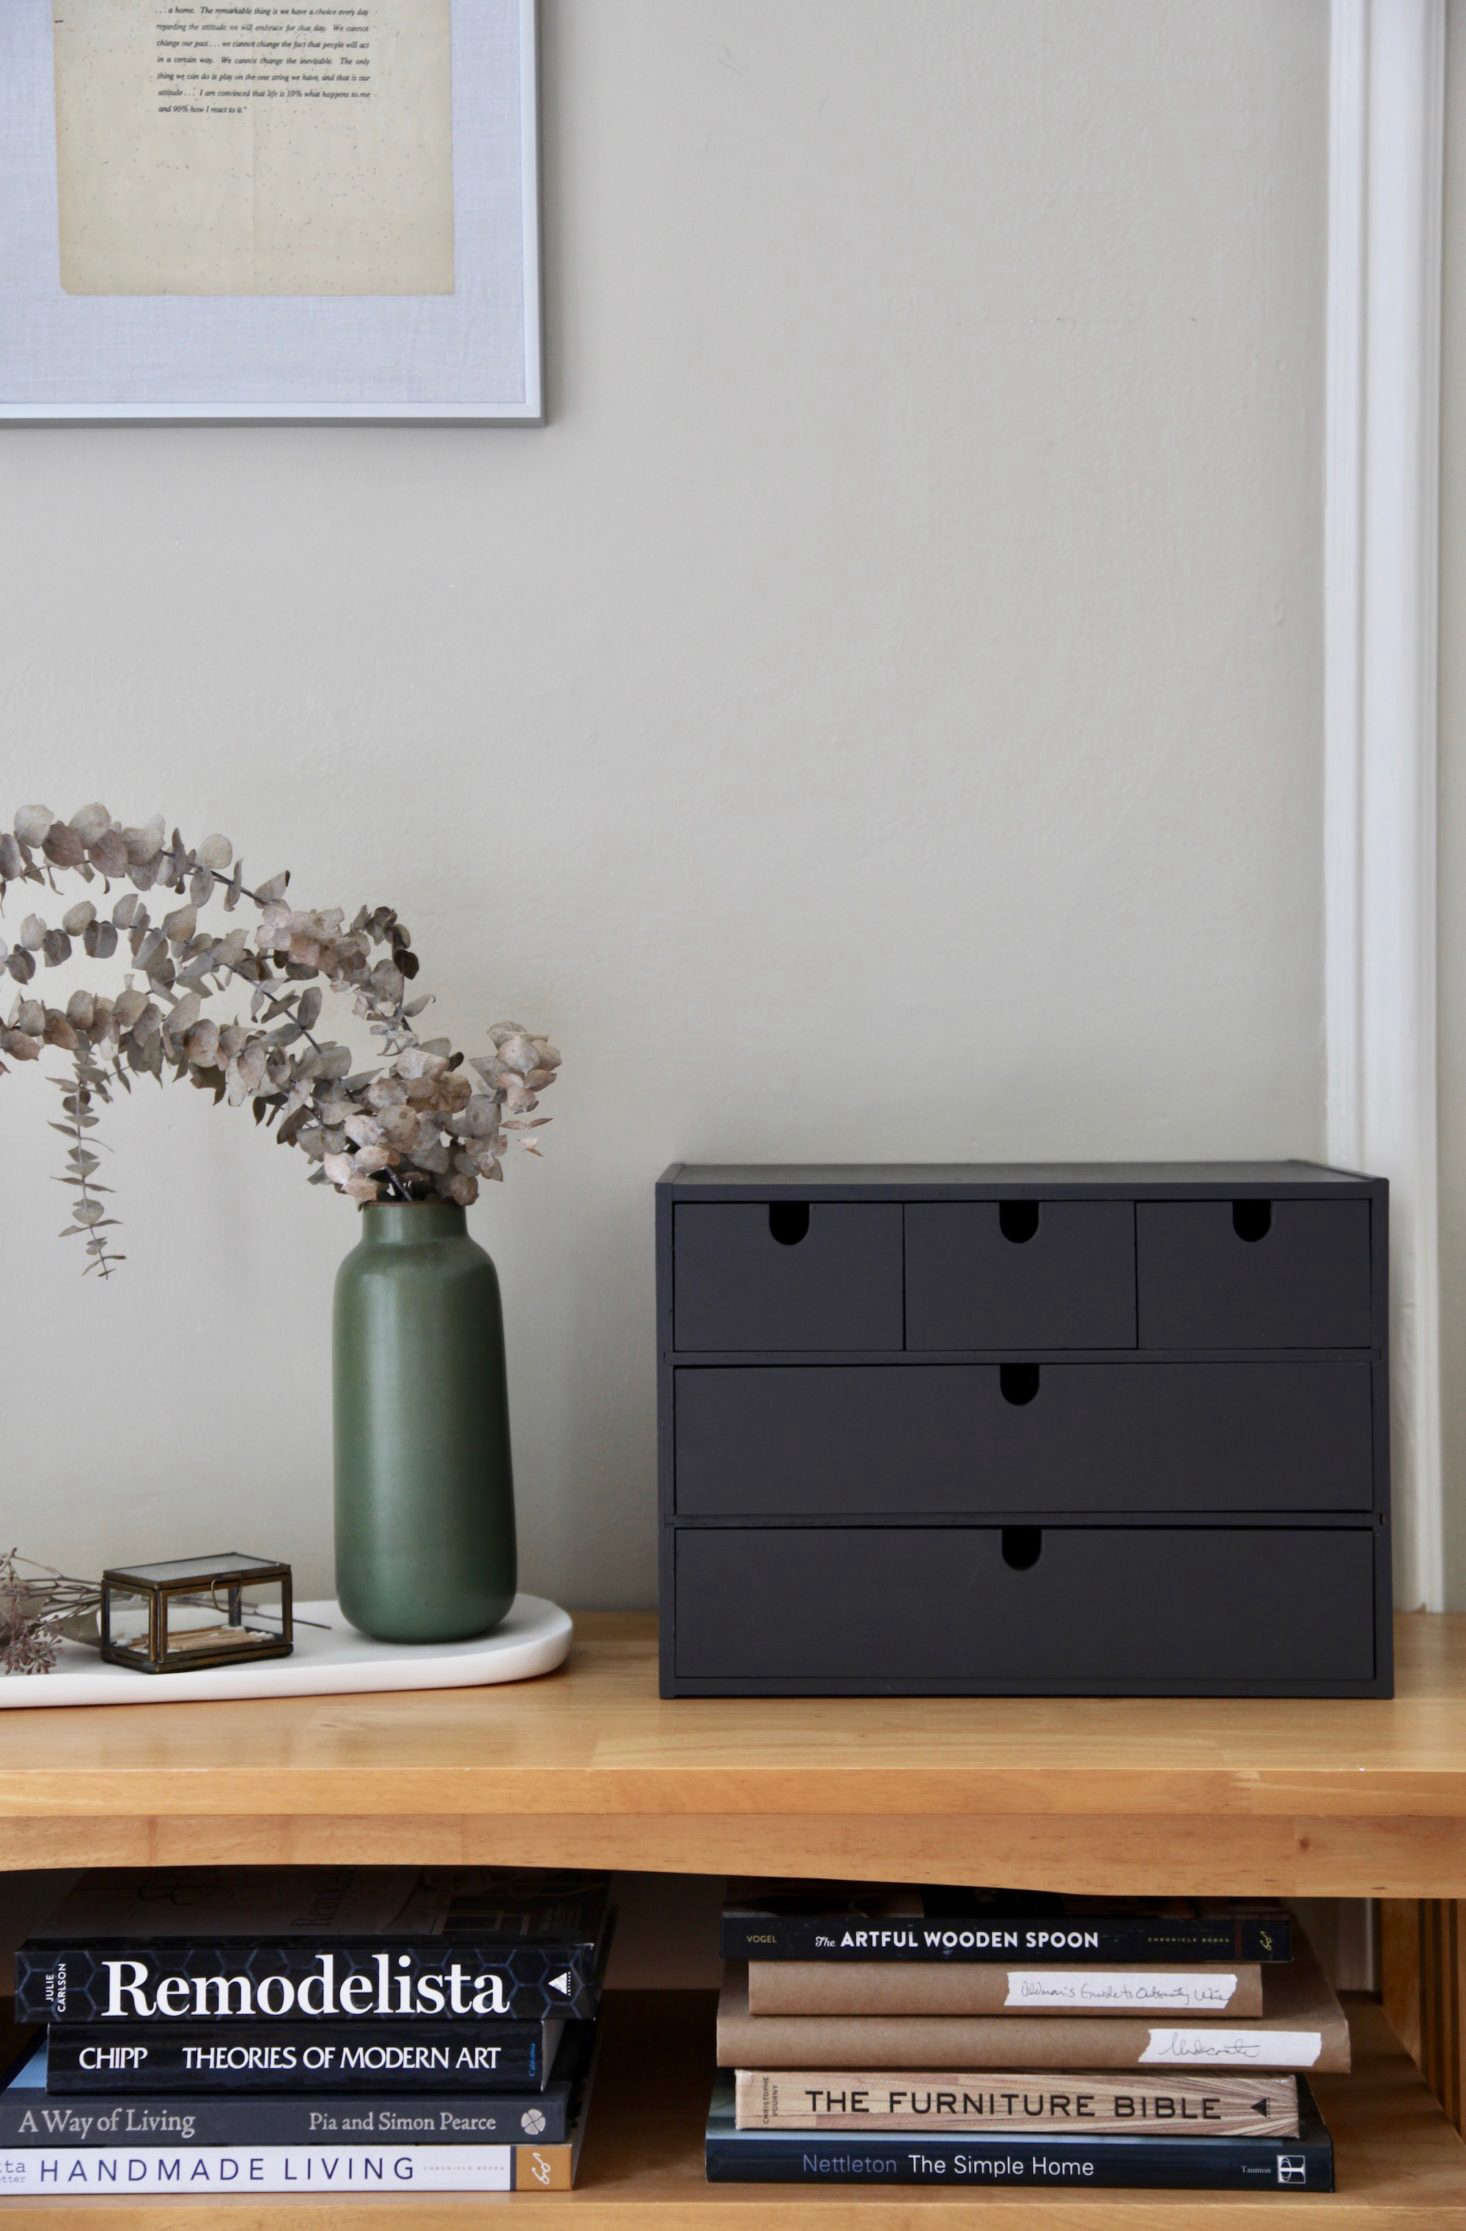 ikea hack: repurposing the moppe storage chest as a spice cabinet